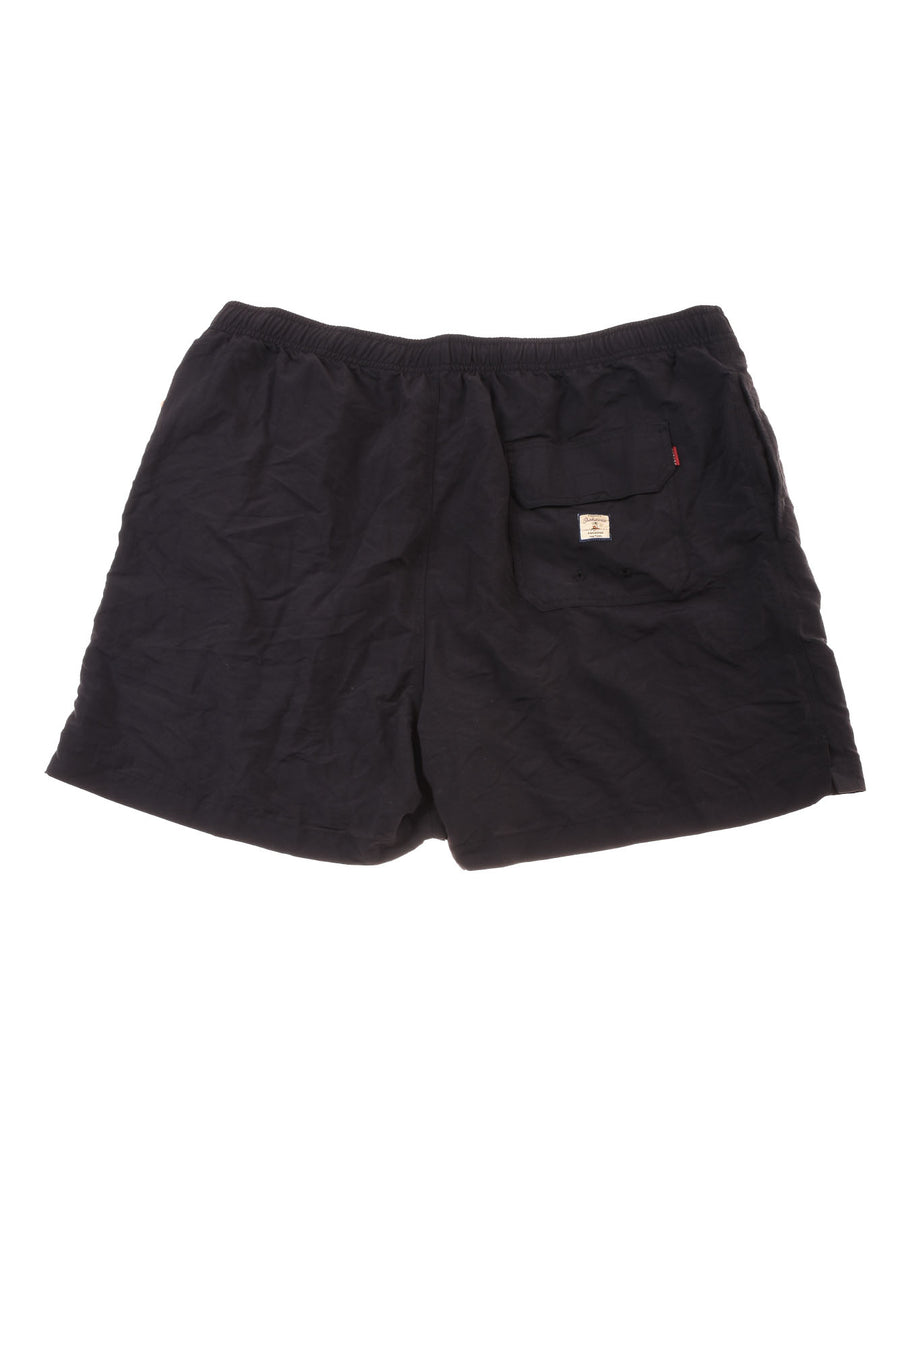 NEW Tommy Bahama Men's Swim Shorts X-Large Black